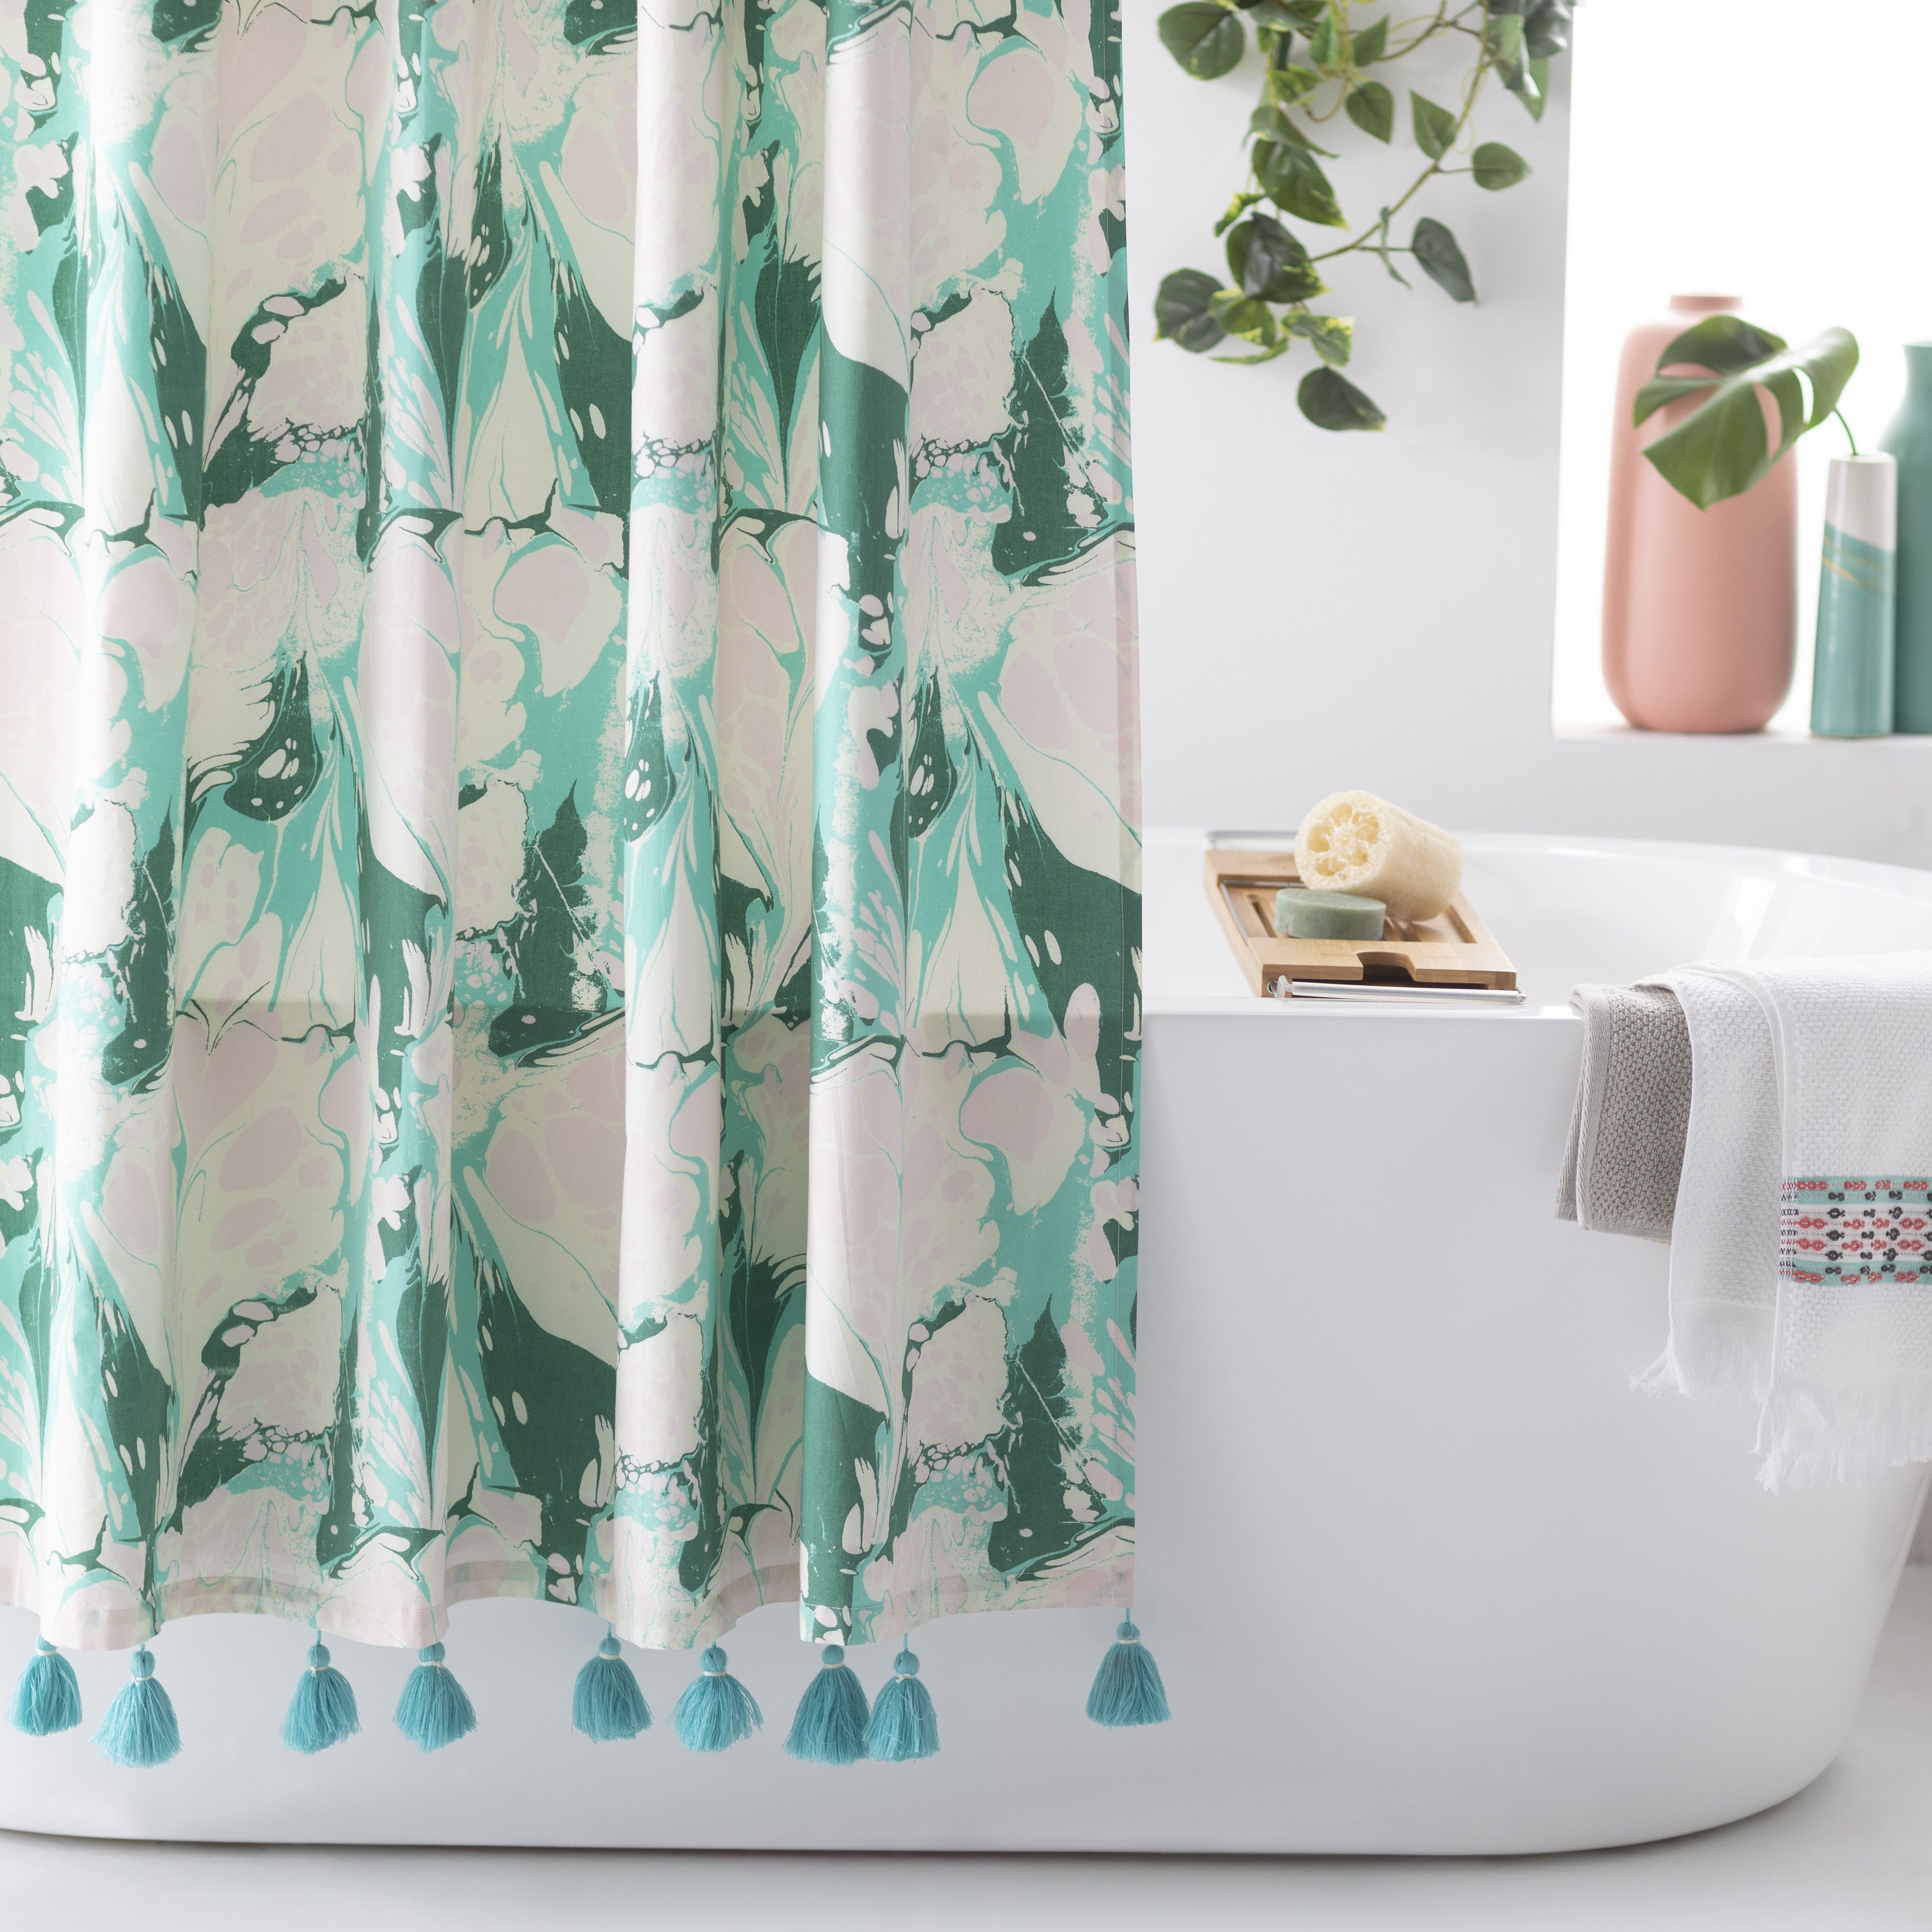 Vintage Marble Shower Curtain By Drew Barrymore Flower Home Walmart Com With Images Marble Showers